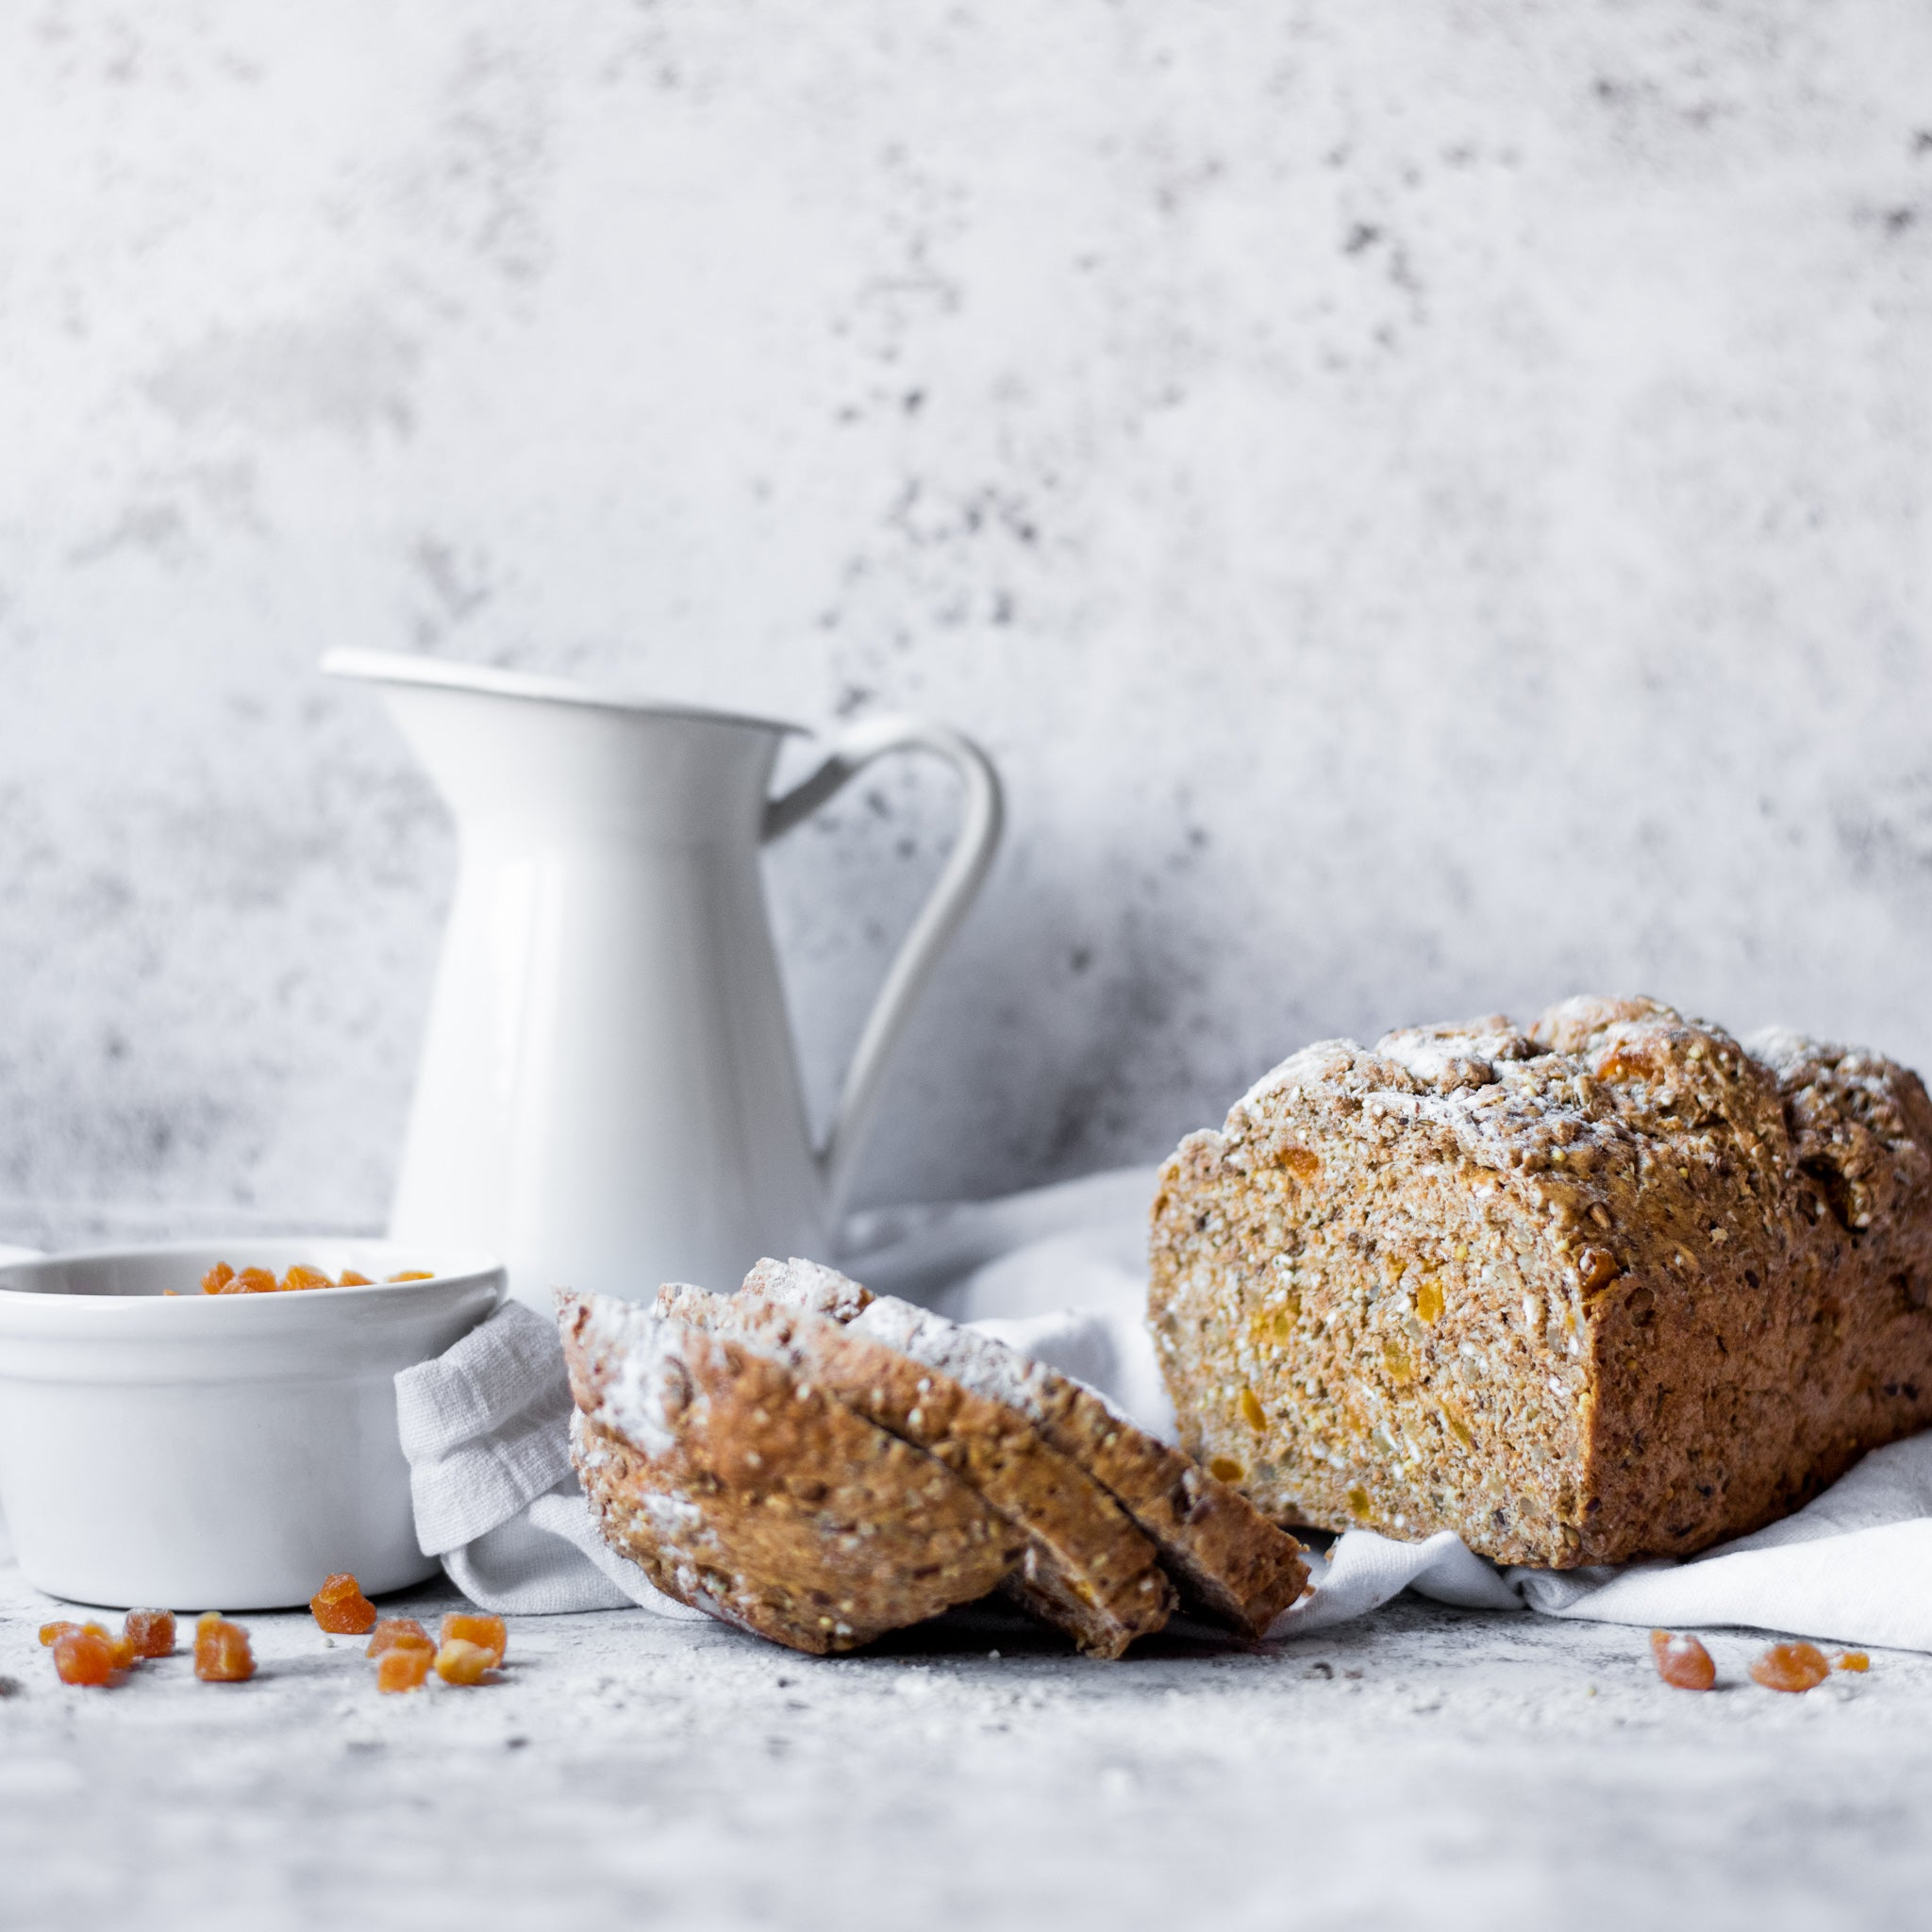 Wholemeal-Seed-Grain-Apricot-Loaf-by-Allinson-s-(10).jpg